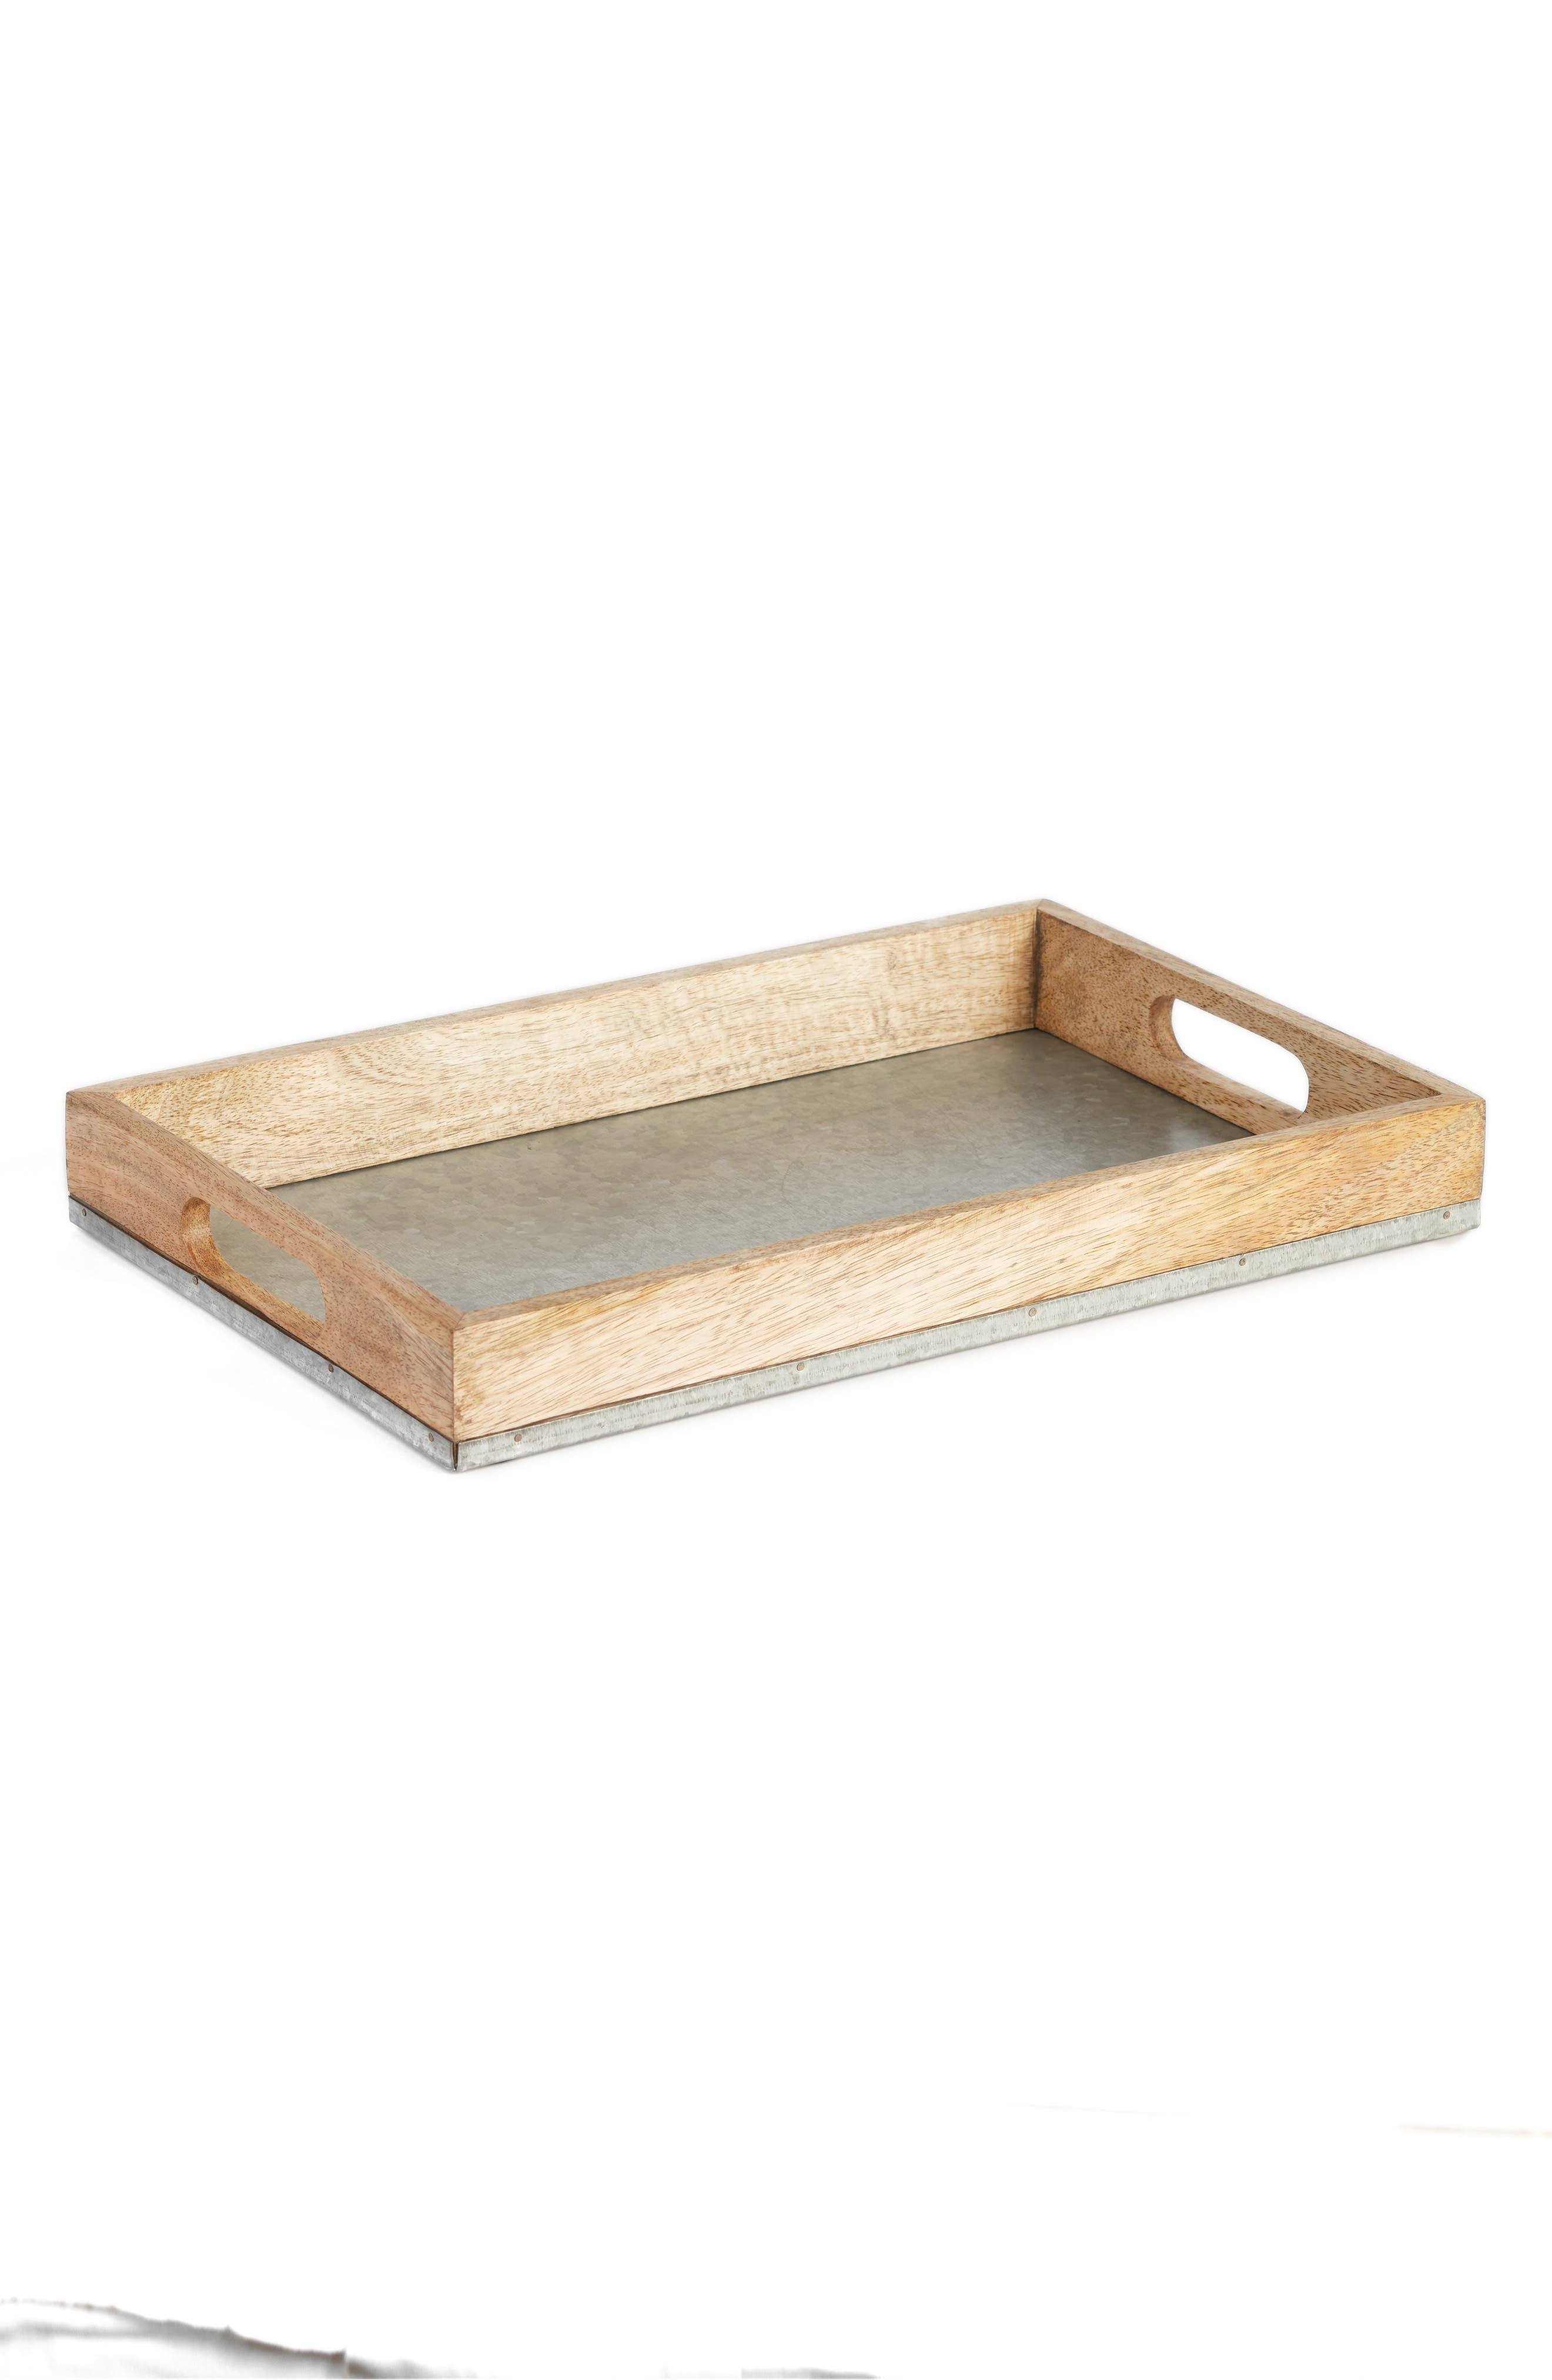 Nordstrom at Home Wood & Galvanized Iron Serving Tray